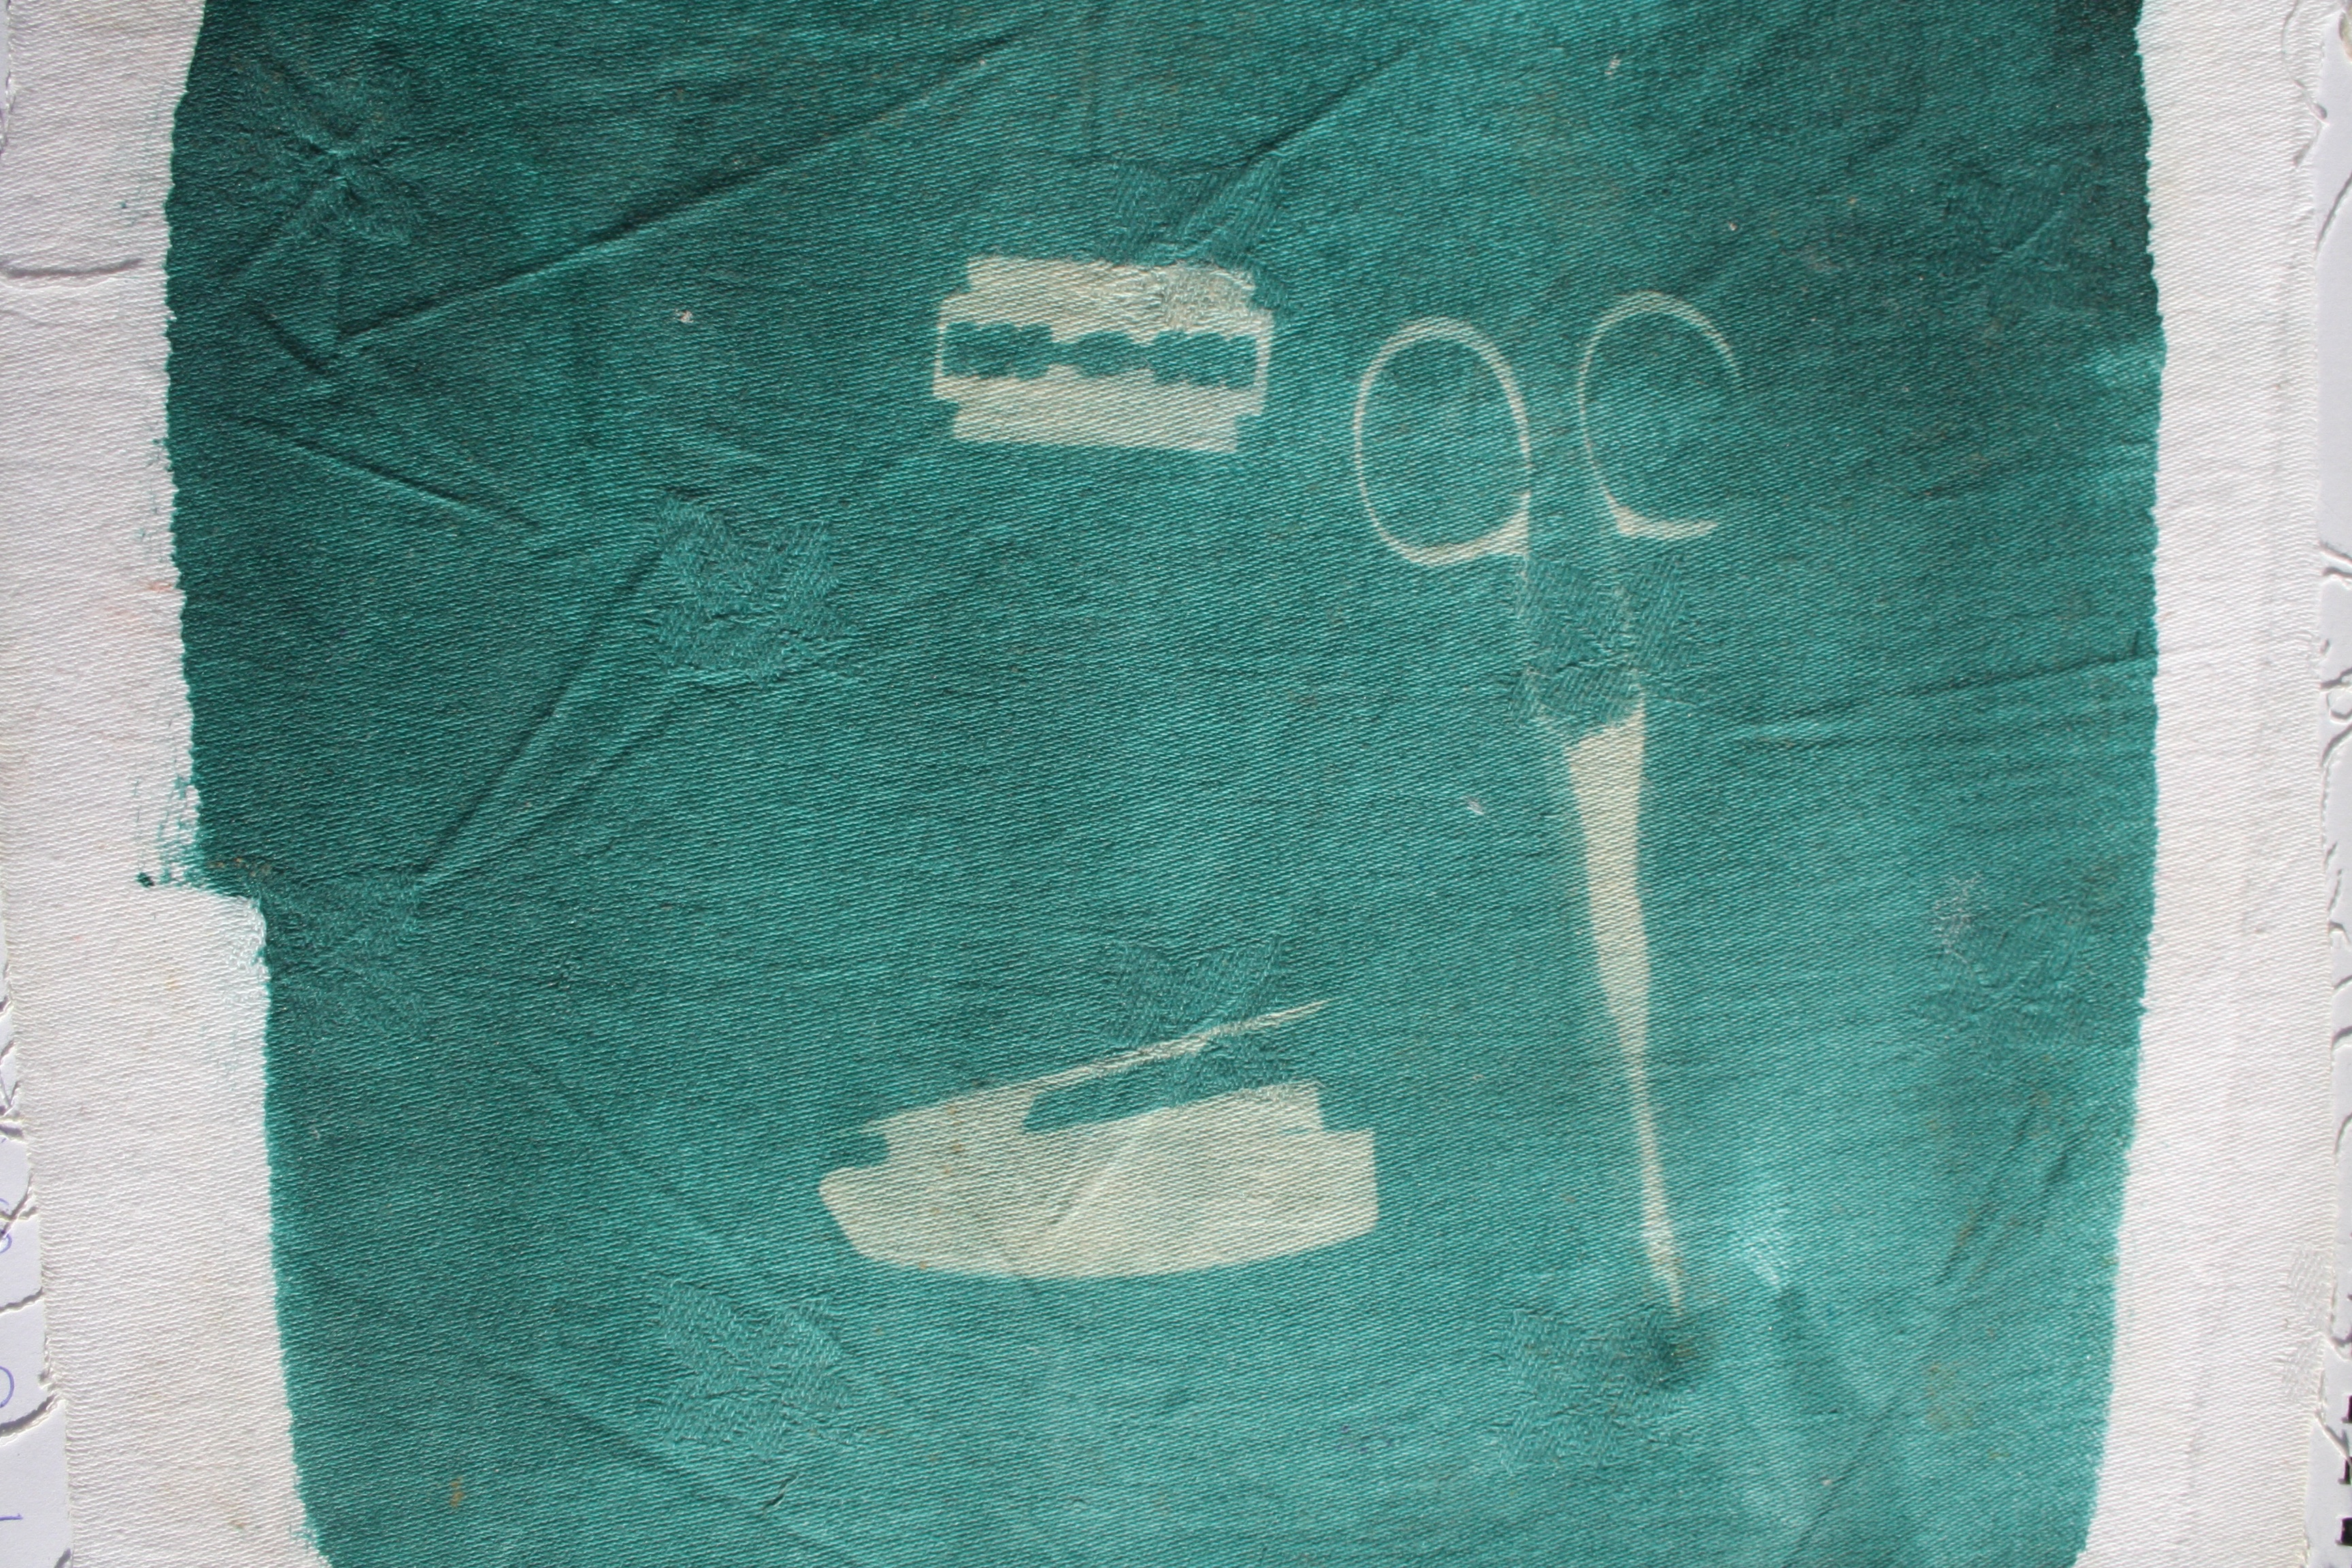 print #35 - 2009 - photosensitive paint on cotton